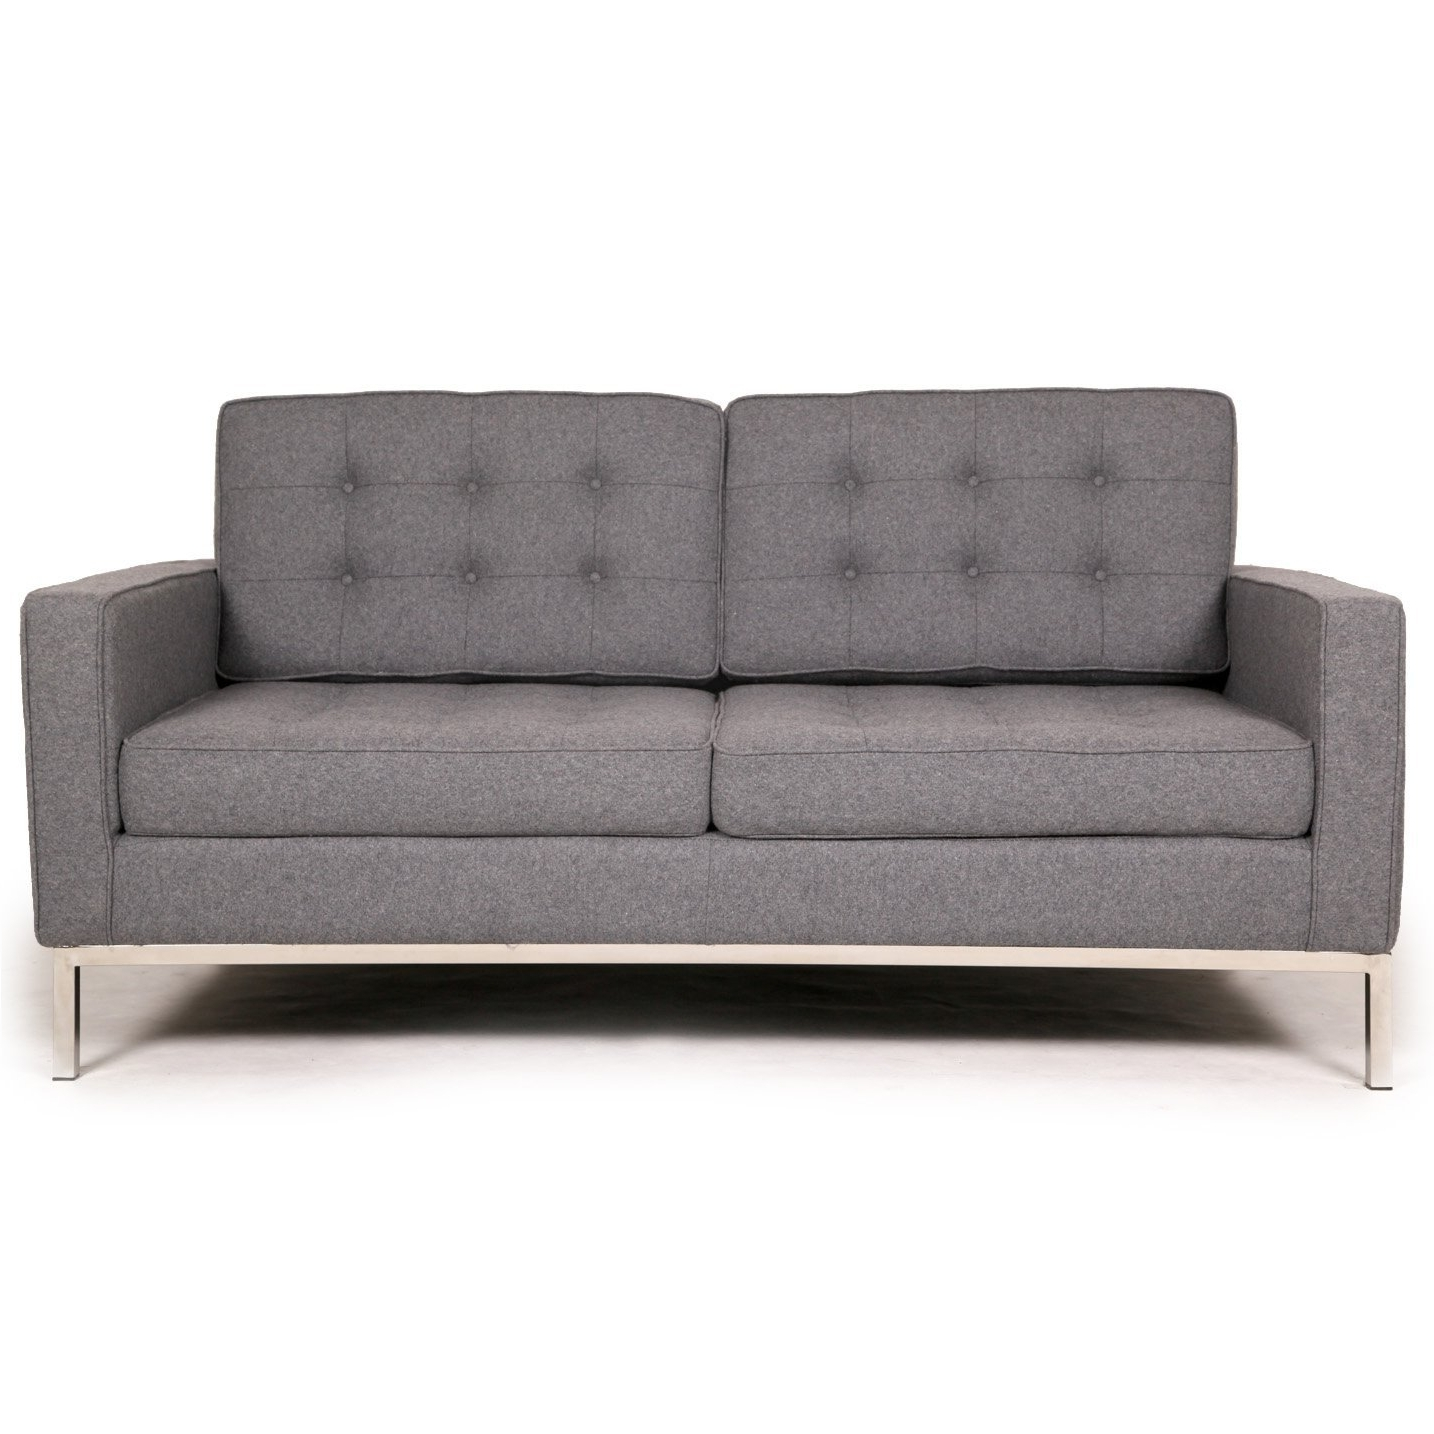 Favorite Florence Sofas And Loveseats With Regard To Florence Knoll Two Seat Loft Sofa Loveseat Wool (View 3 of 20)